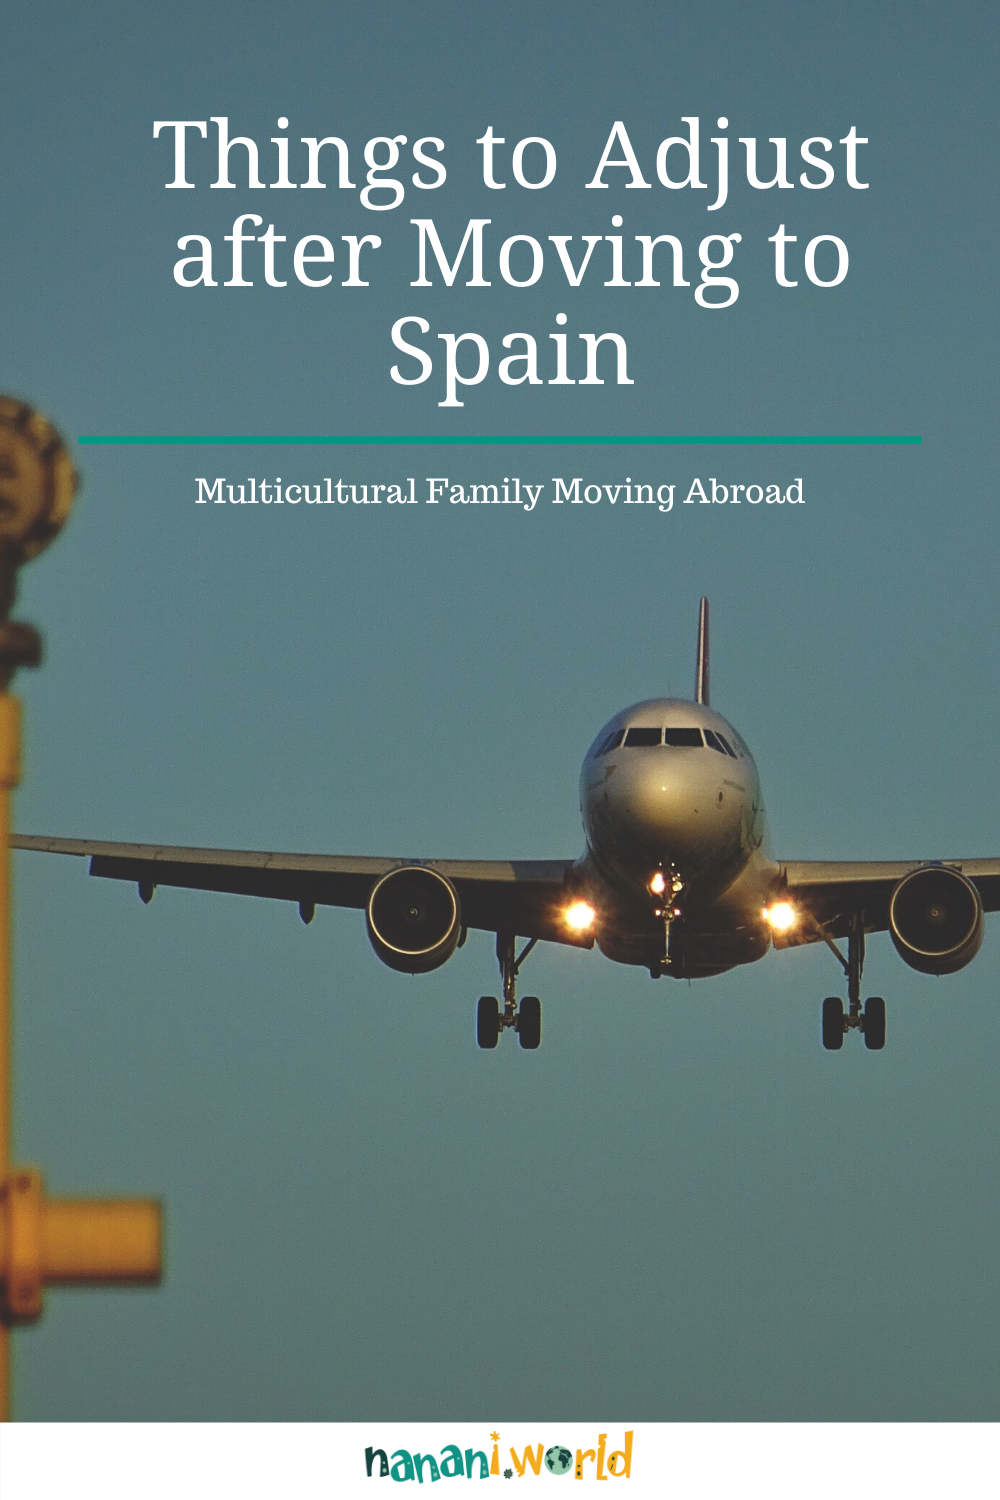 8 Things to Adjust after moving to spain